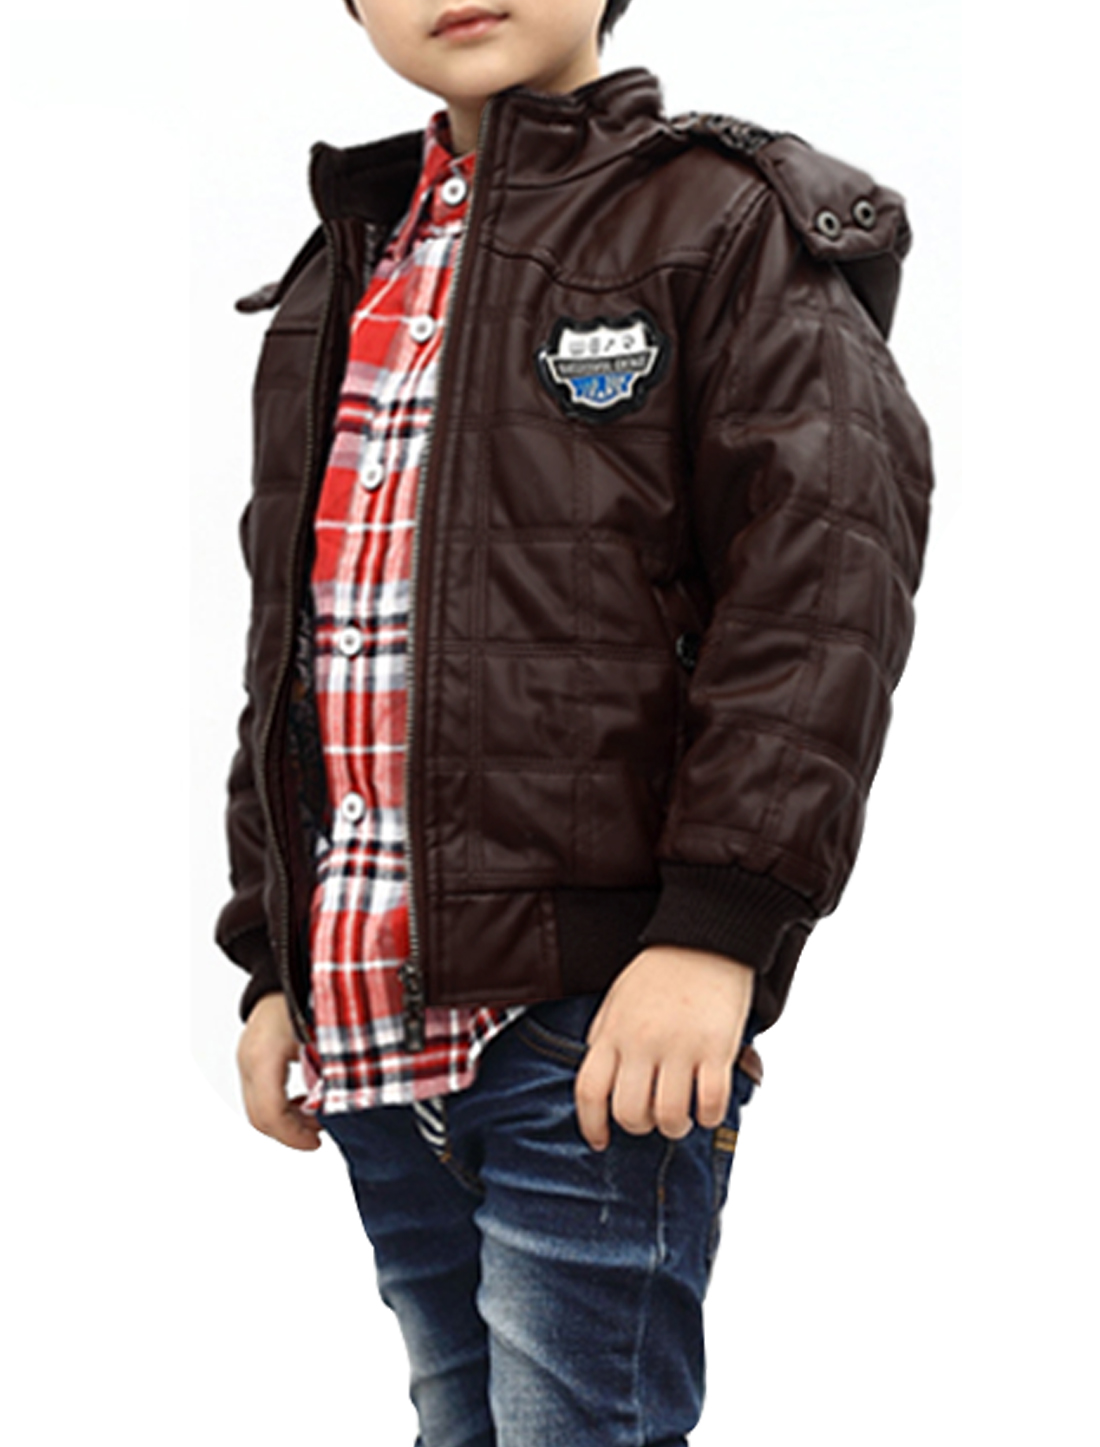 Hooded Long Sleeve Pockets Design Jacket for Boys Coffee 10